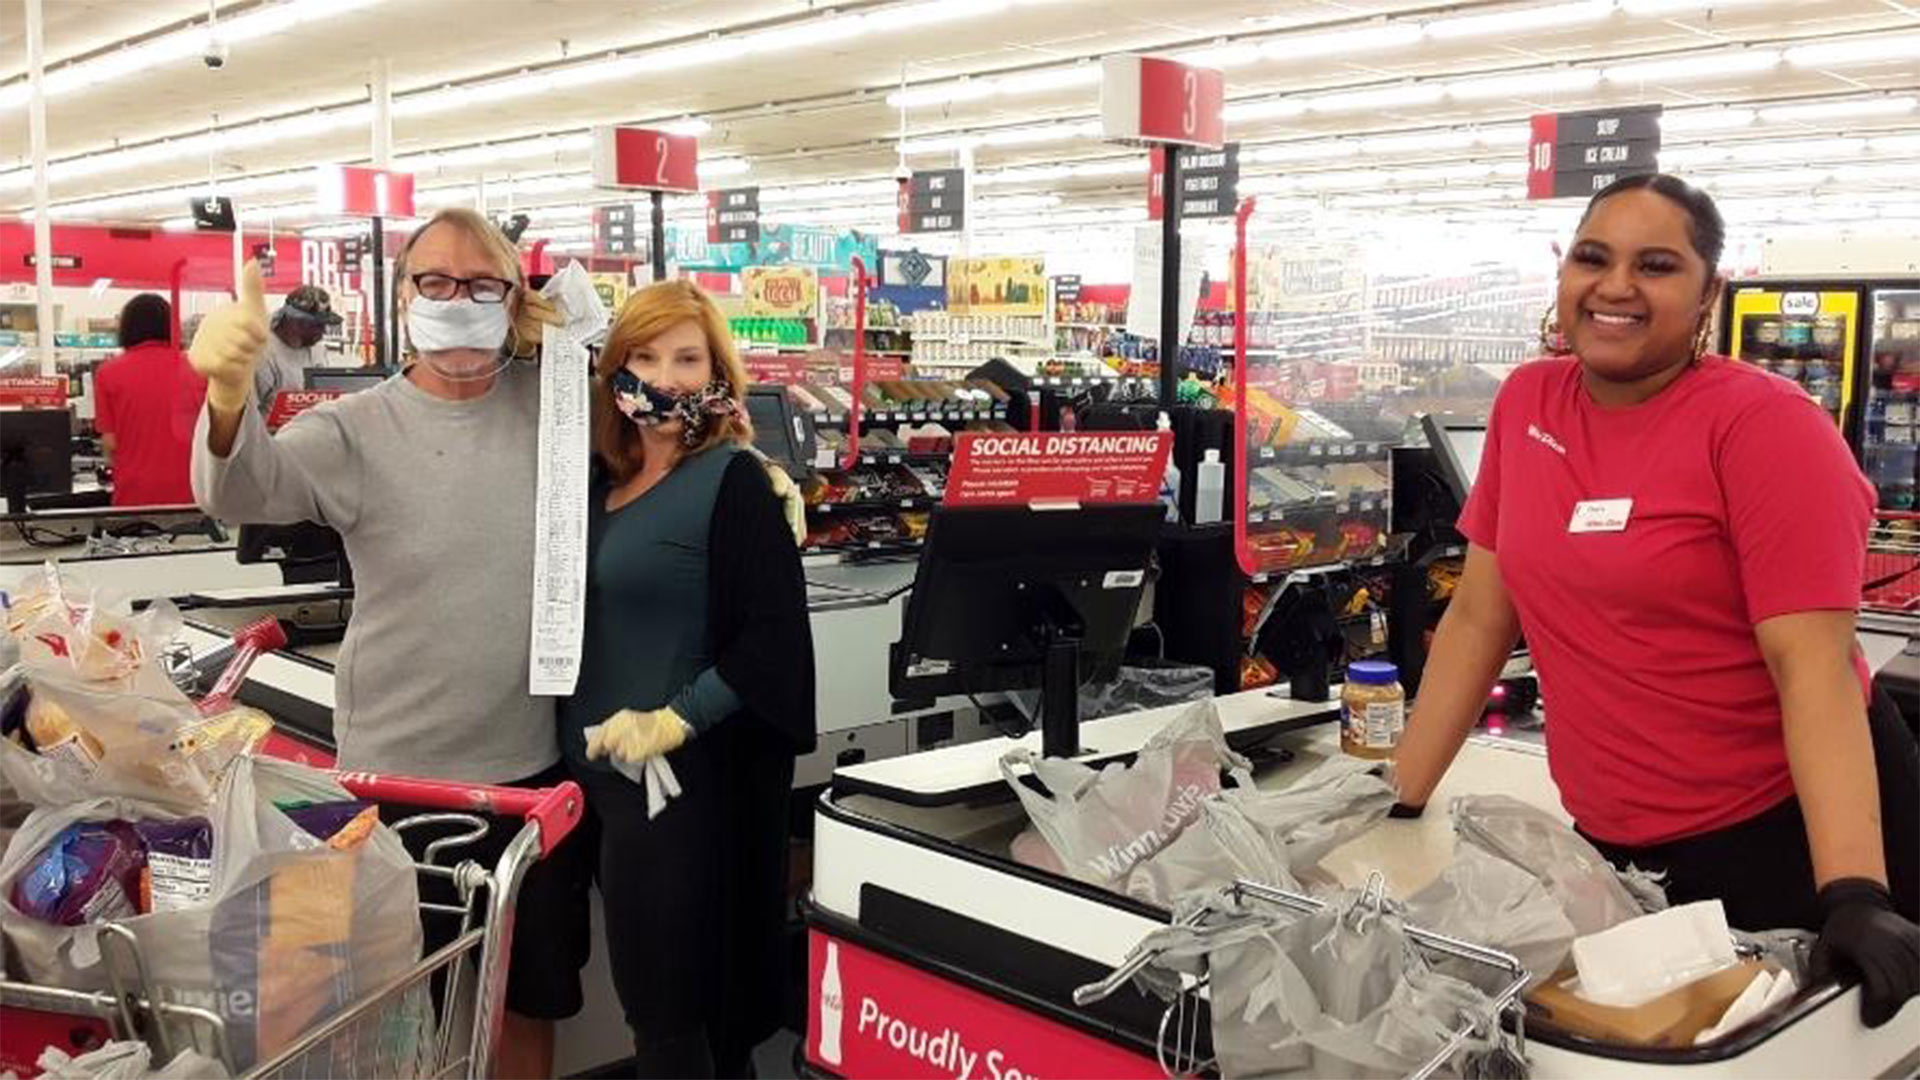 Tyler Perry Pays for All Groceries in Kroger 2